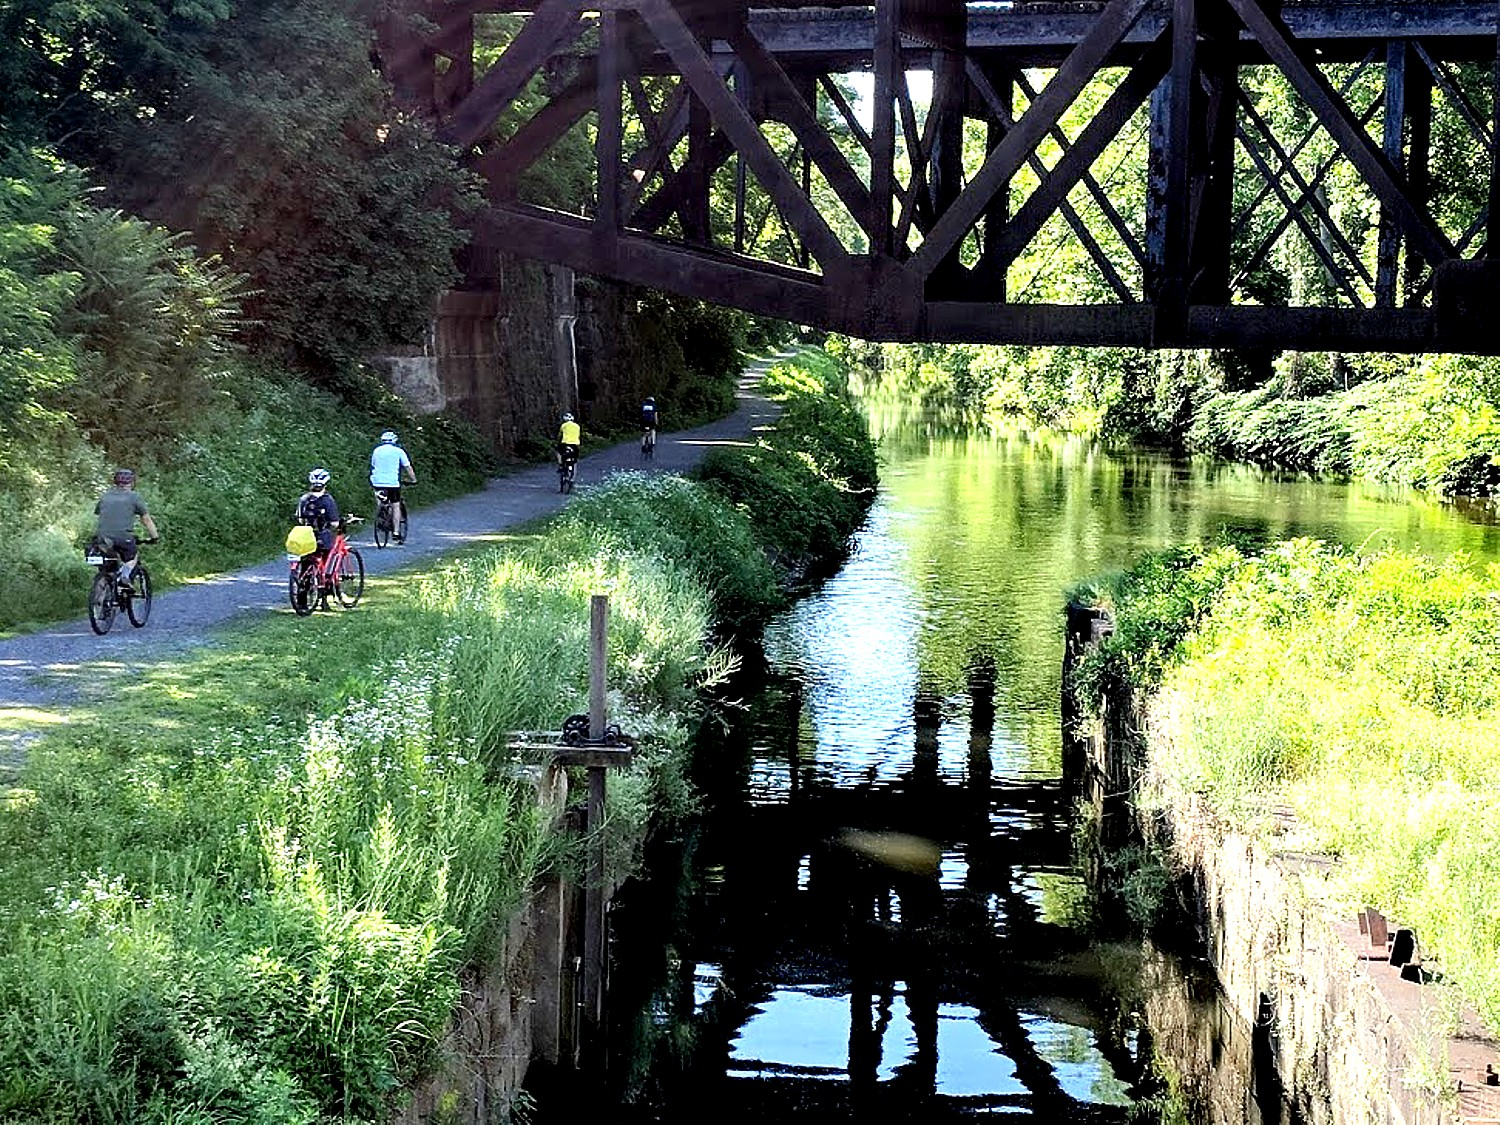 Rails-to-Trails Sojourn on Delaware-Lehigh Trail Showcases Repurposed Canal Towpath & History of Industrial Revolution